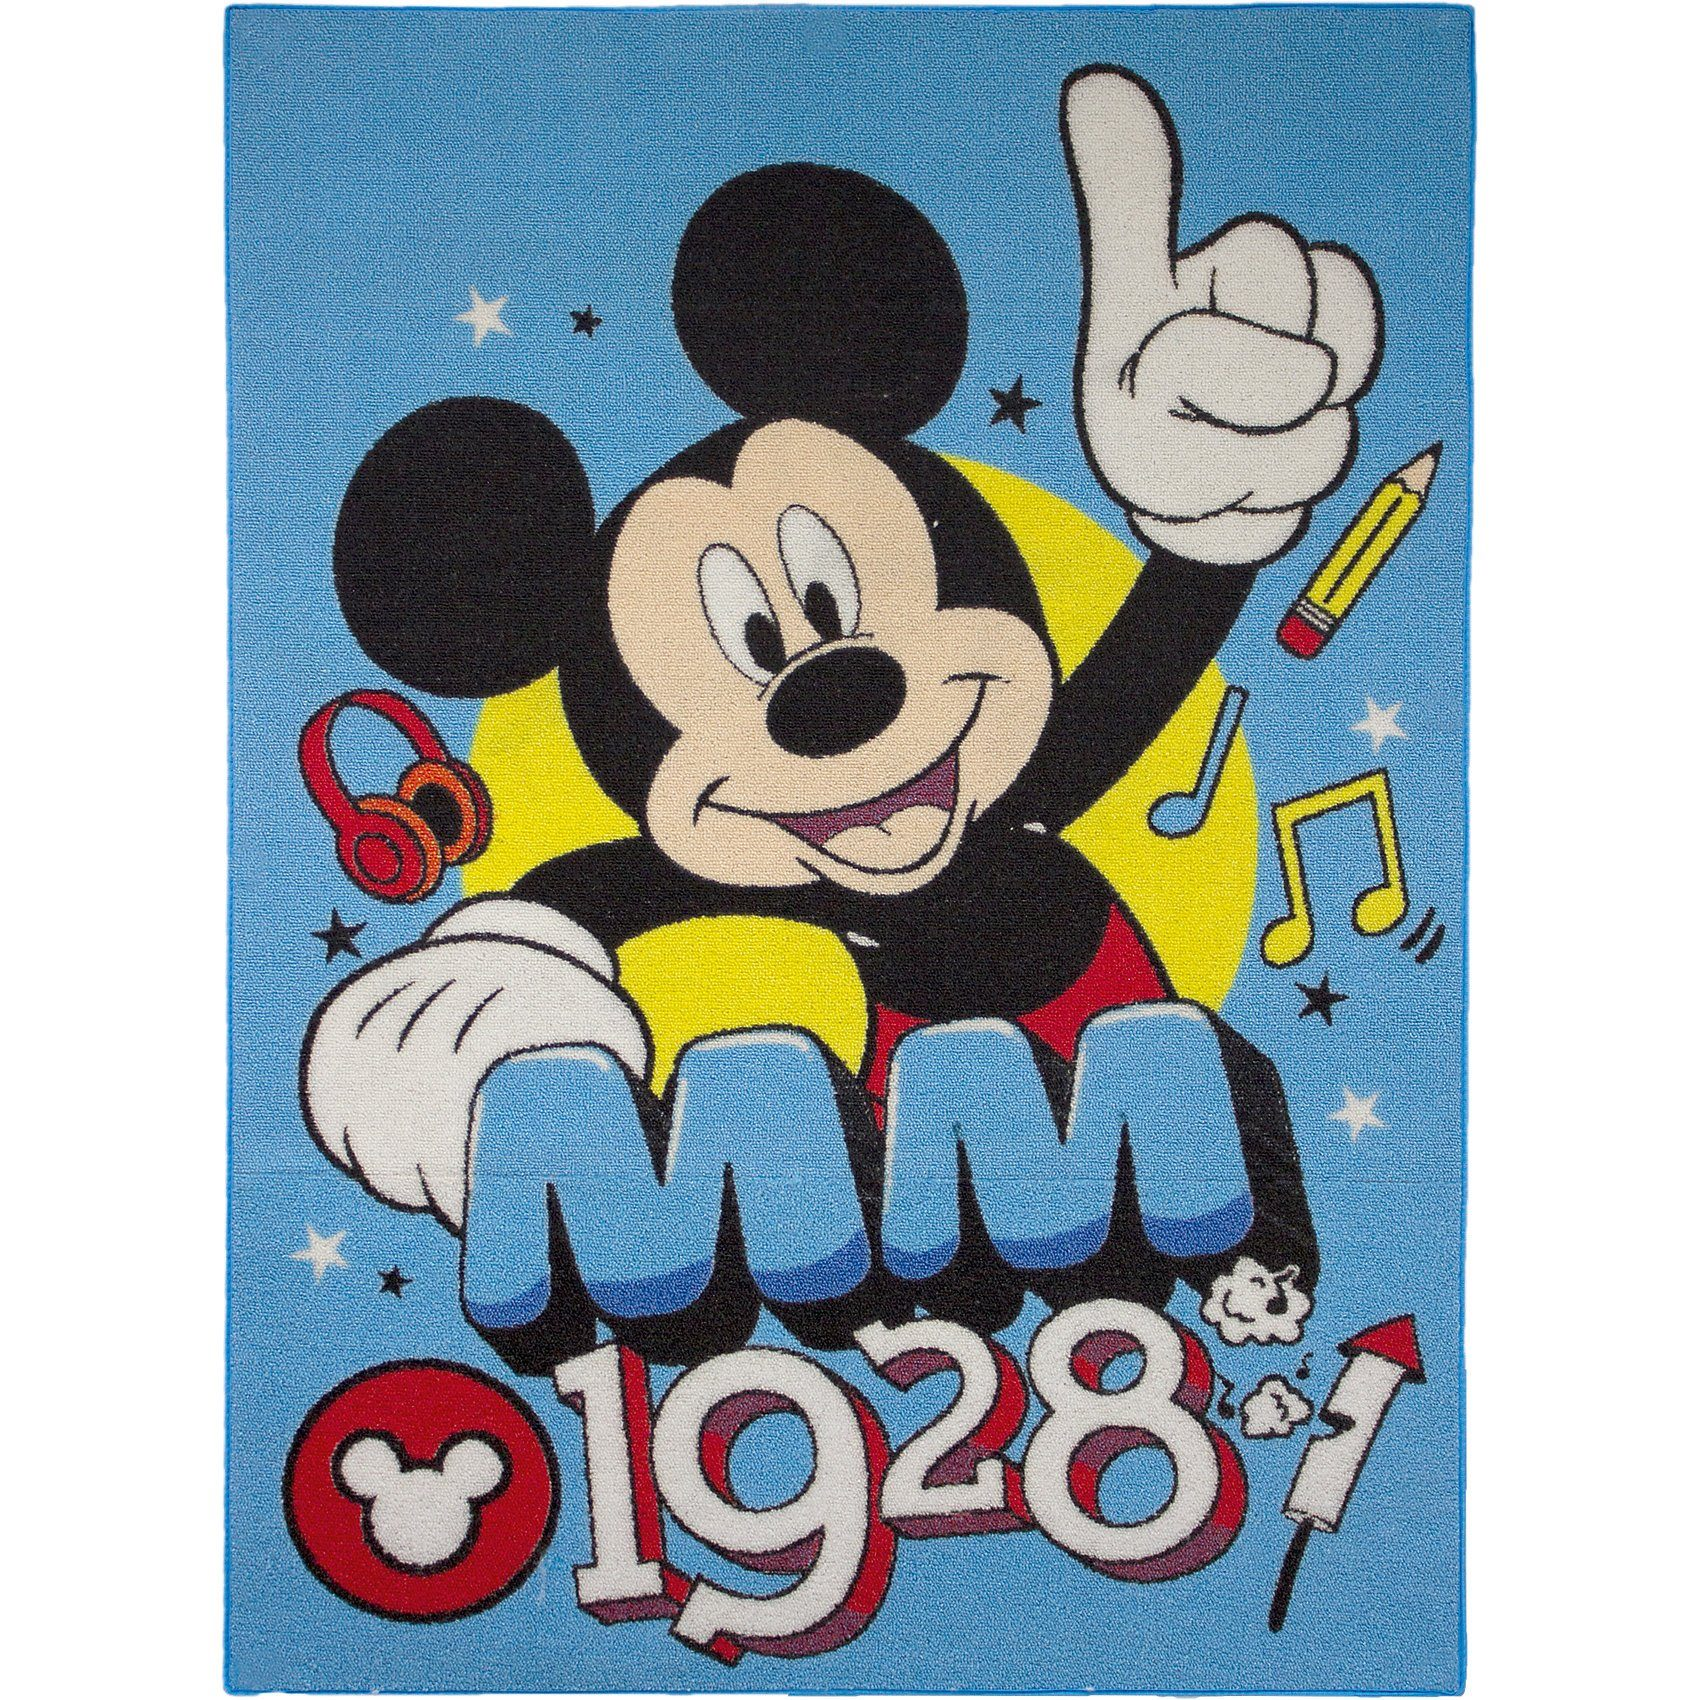 Kinderteppich Mickey MM 1928, 95 x 133 cm